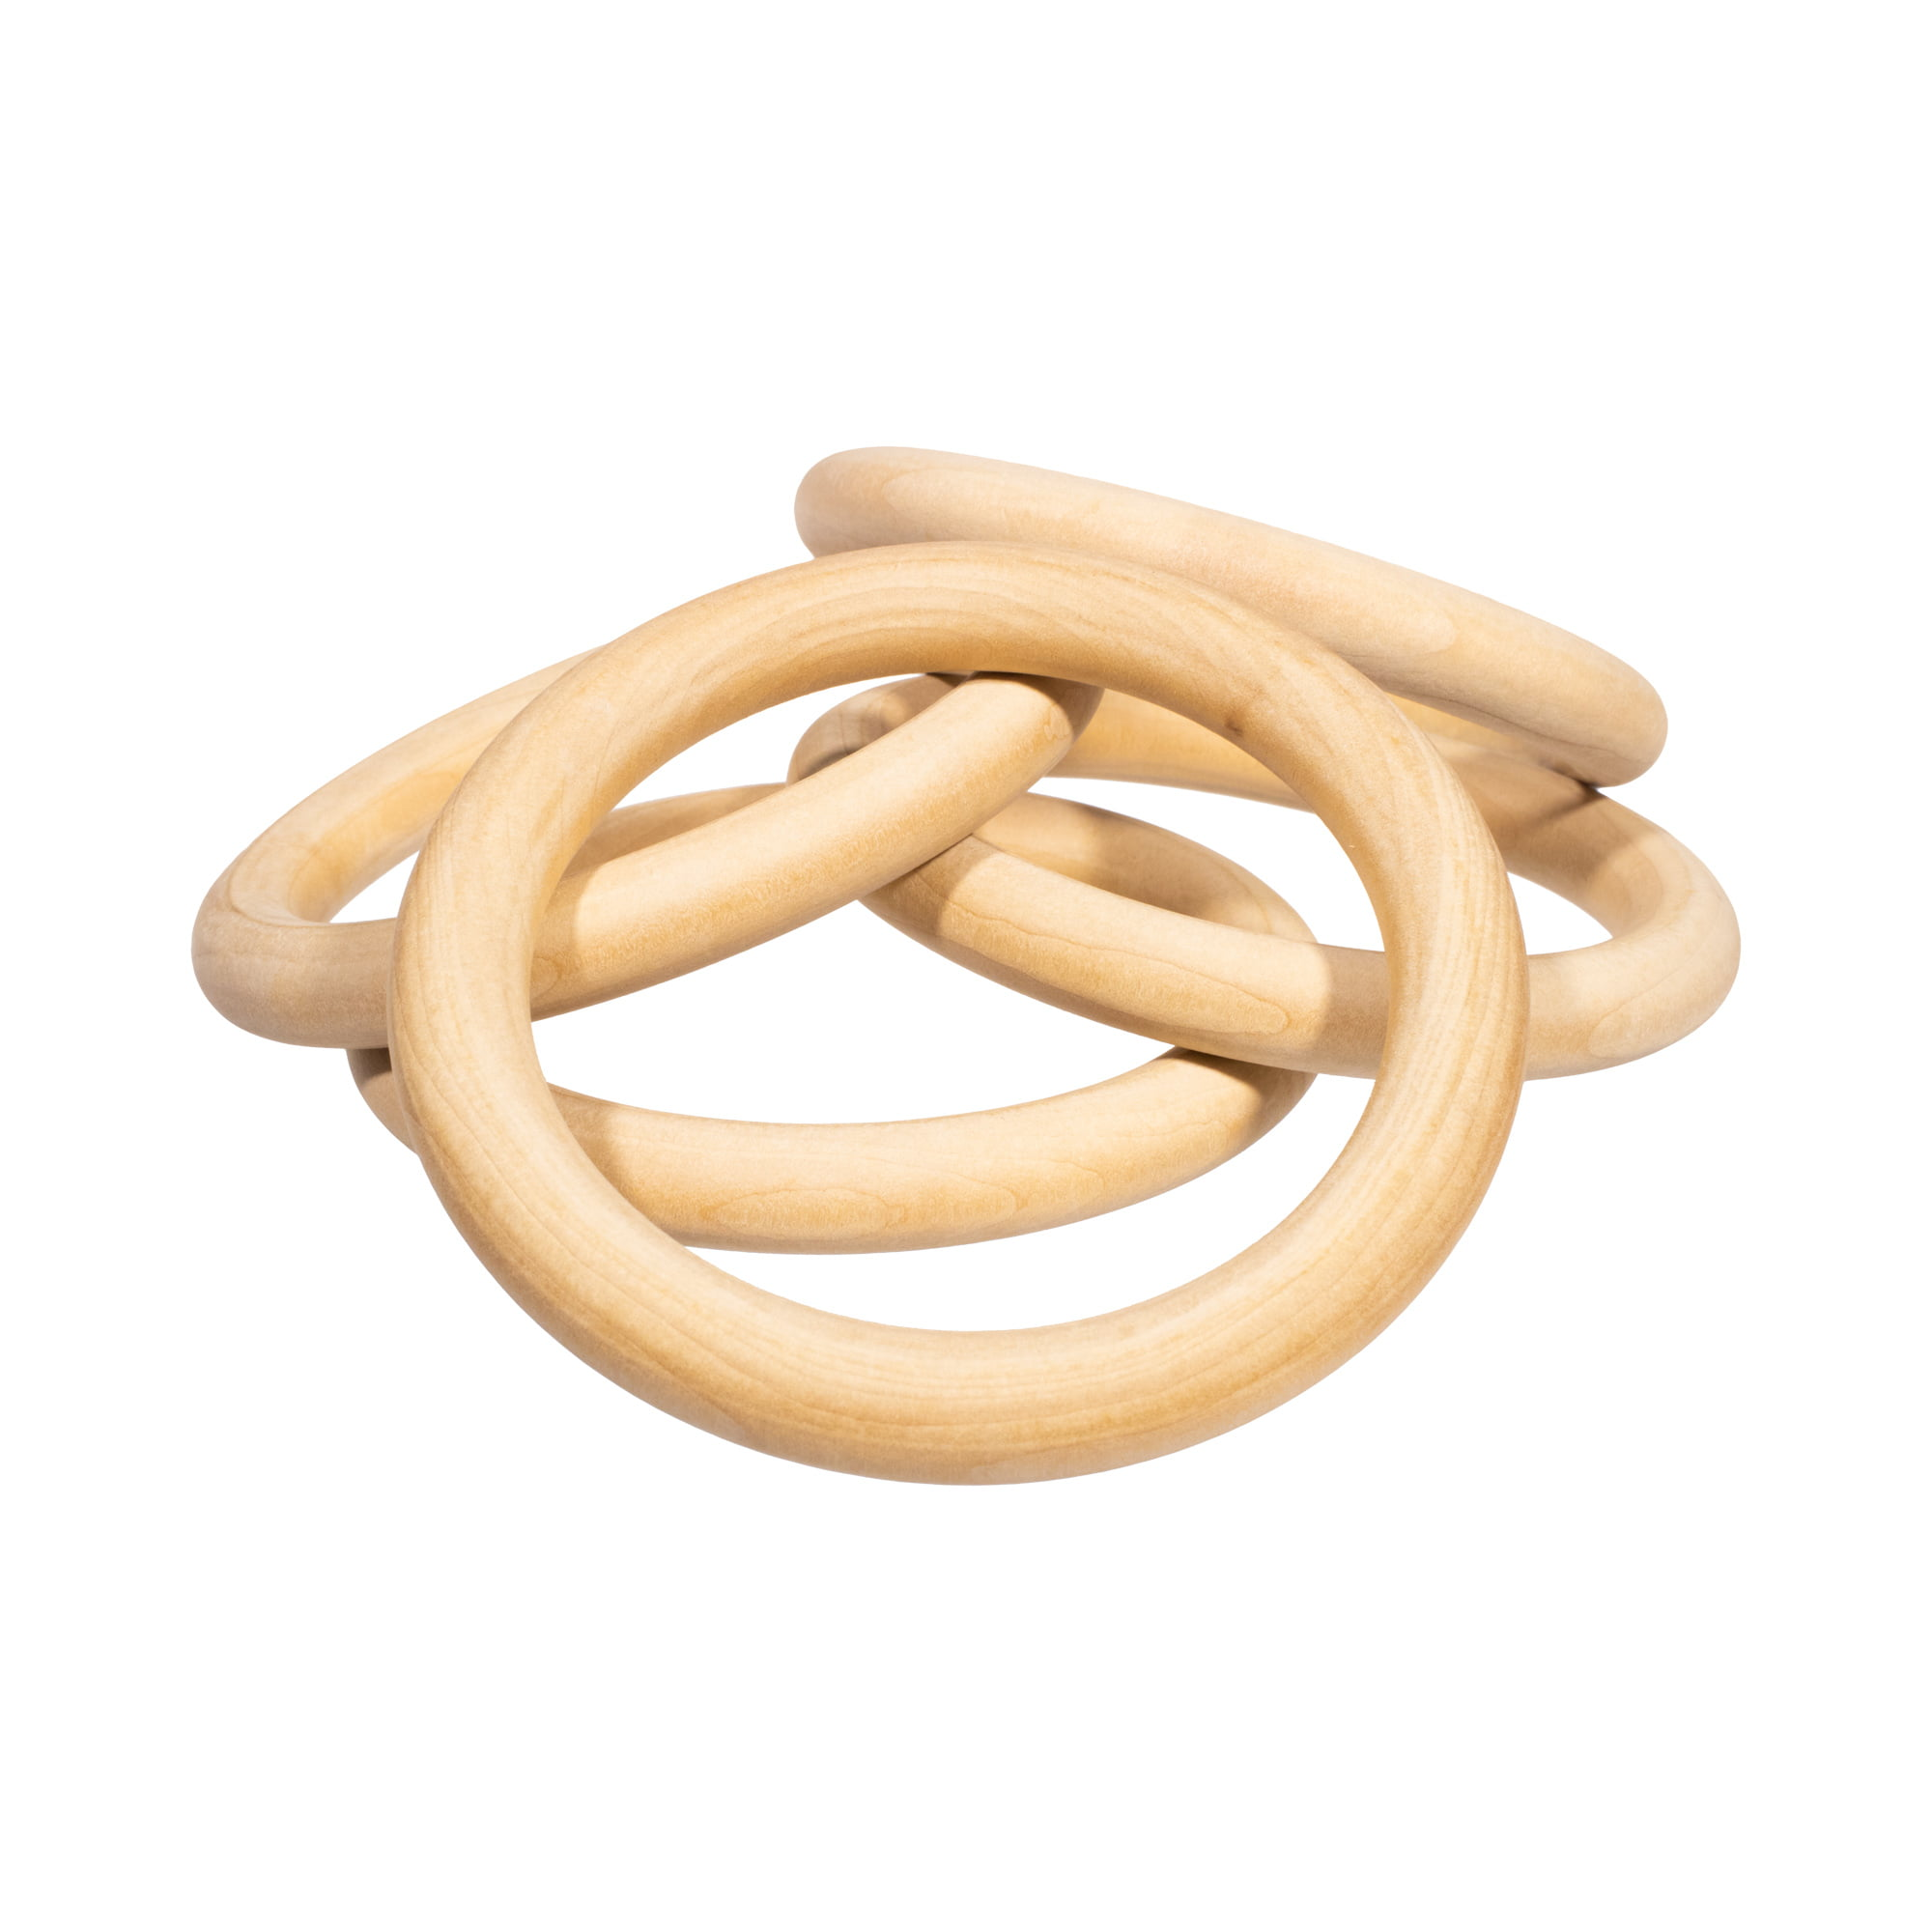 Craft County Unfinished Natural Wood Rings In Multiple Sizes Packs For Diy Crafts Projects Jewelry Making Macrame Wall Hanging Napkin Ring Wooden Toy And More Walmart Com Walmart Com